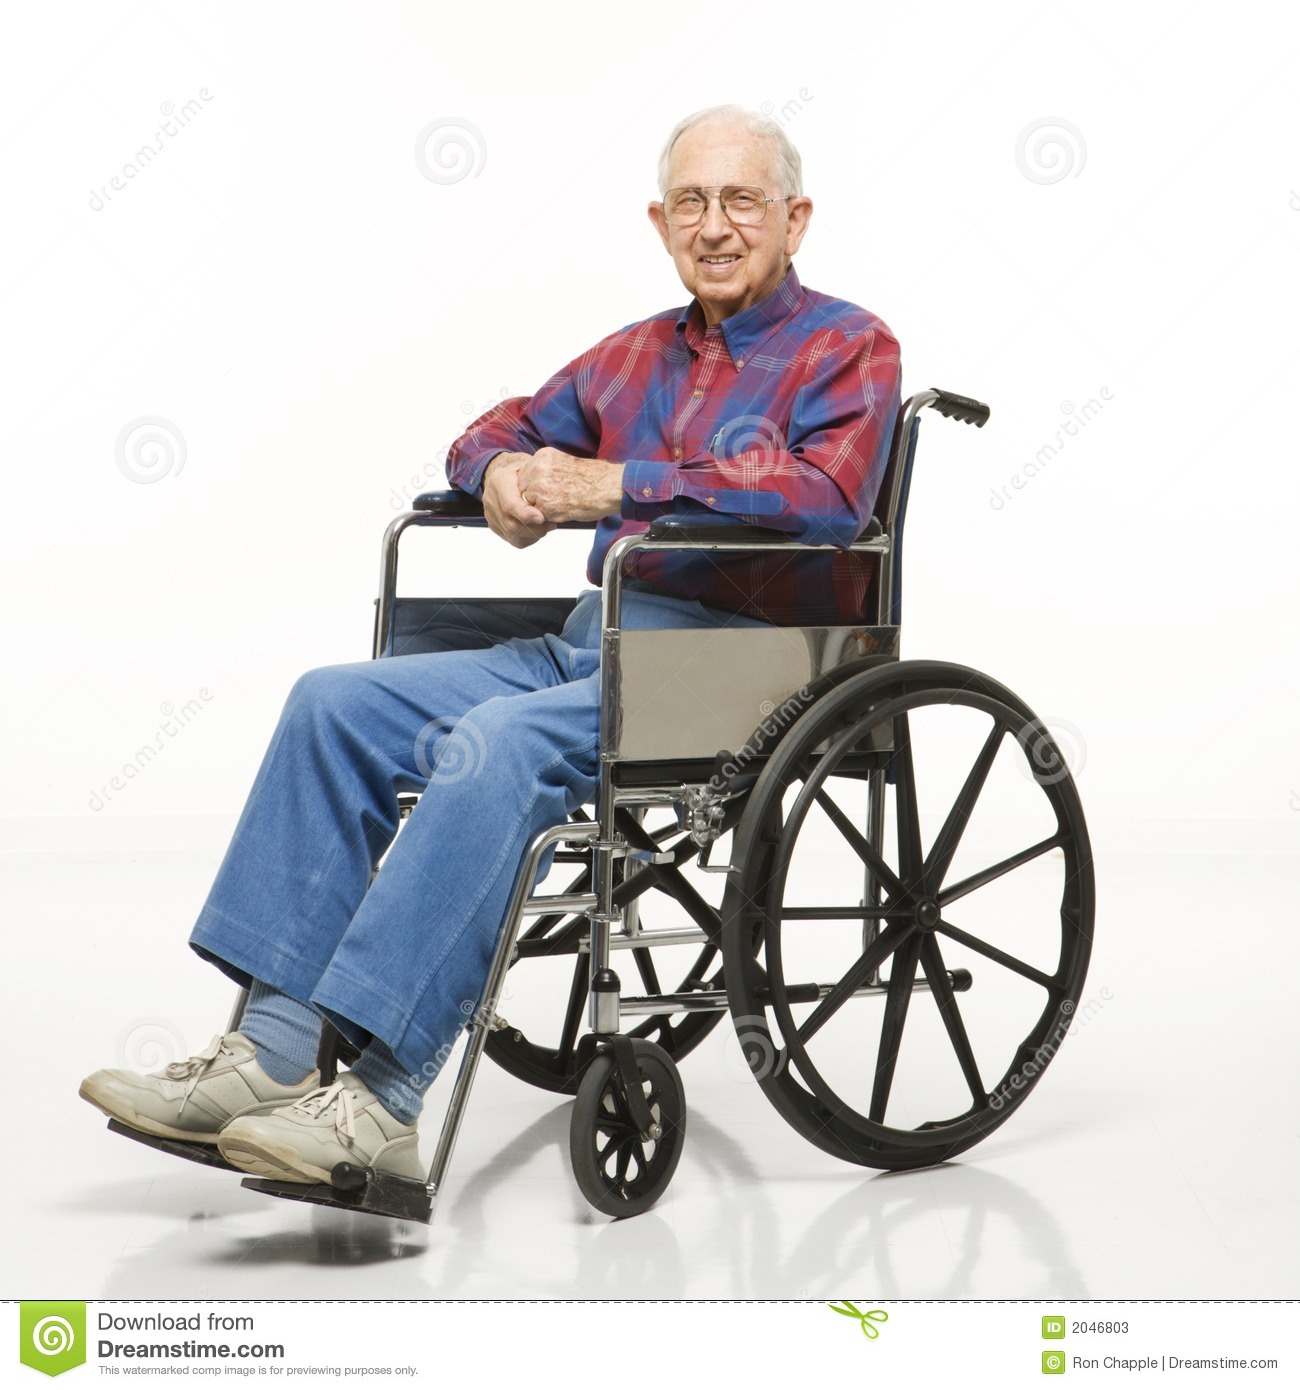 Image of: Electric Elderly Man In Wheelchair Dreamstimecom Elderly Man In Wheelchair Stock Image Image Of Posed 2046803